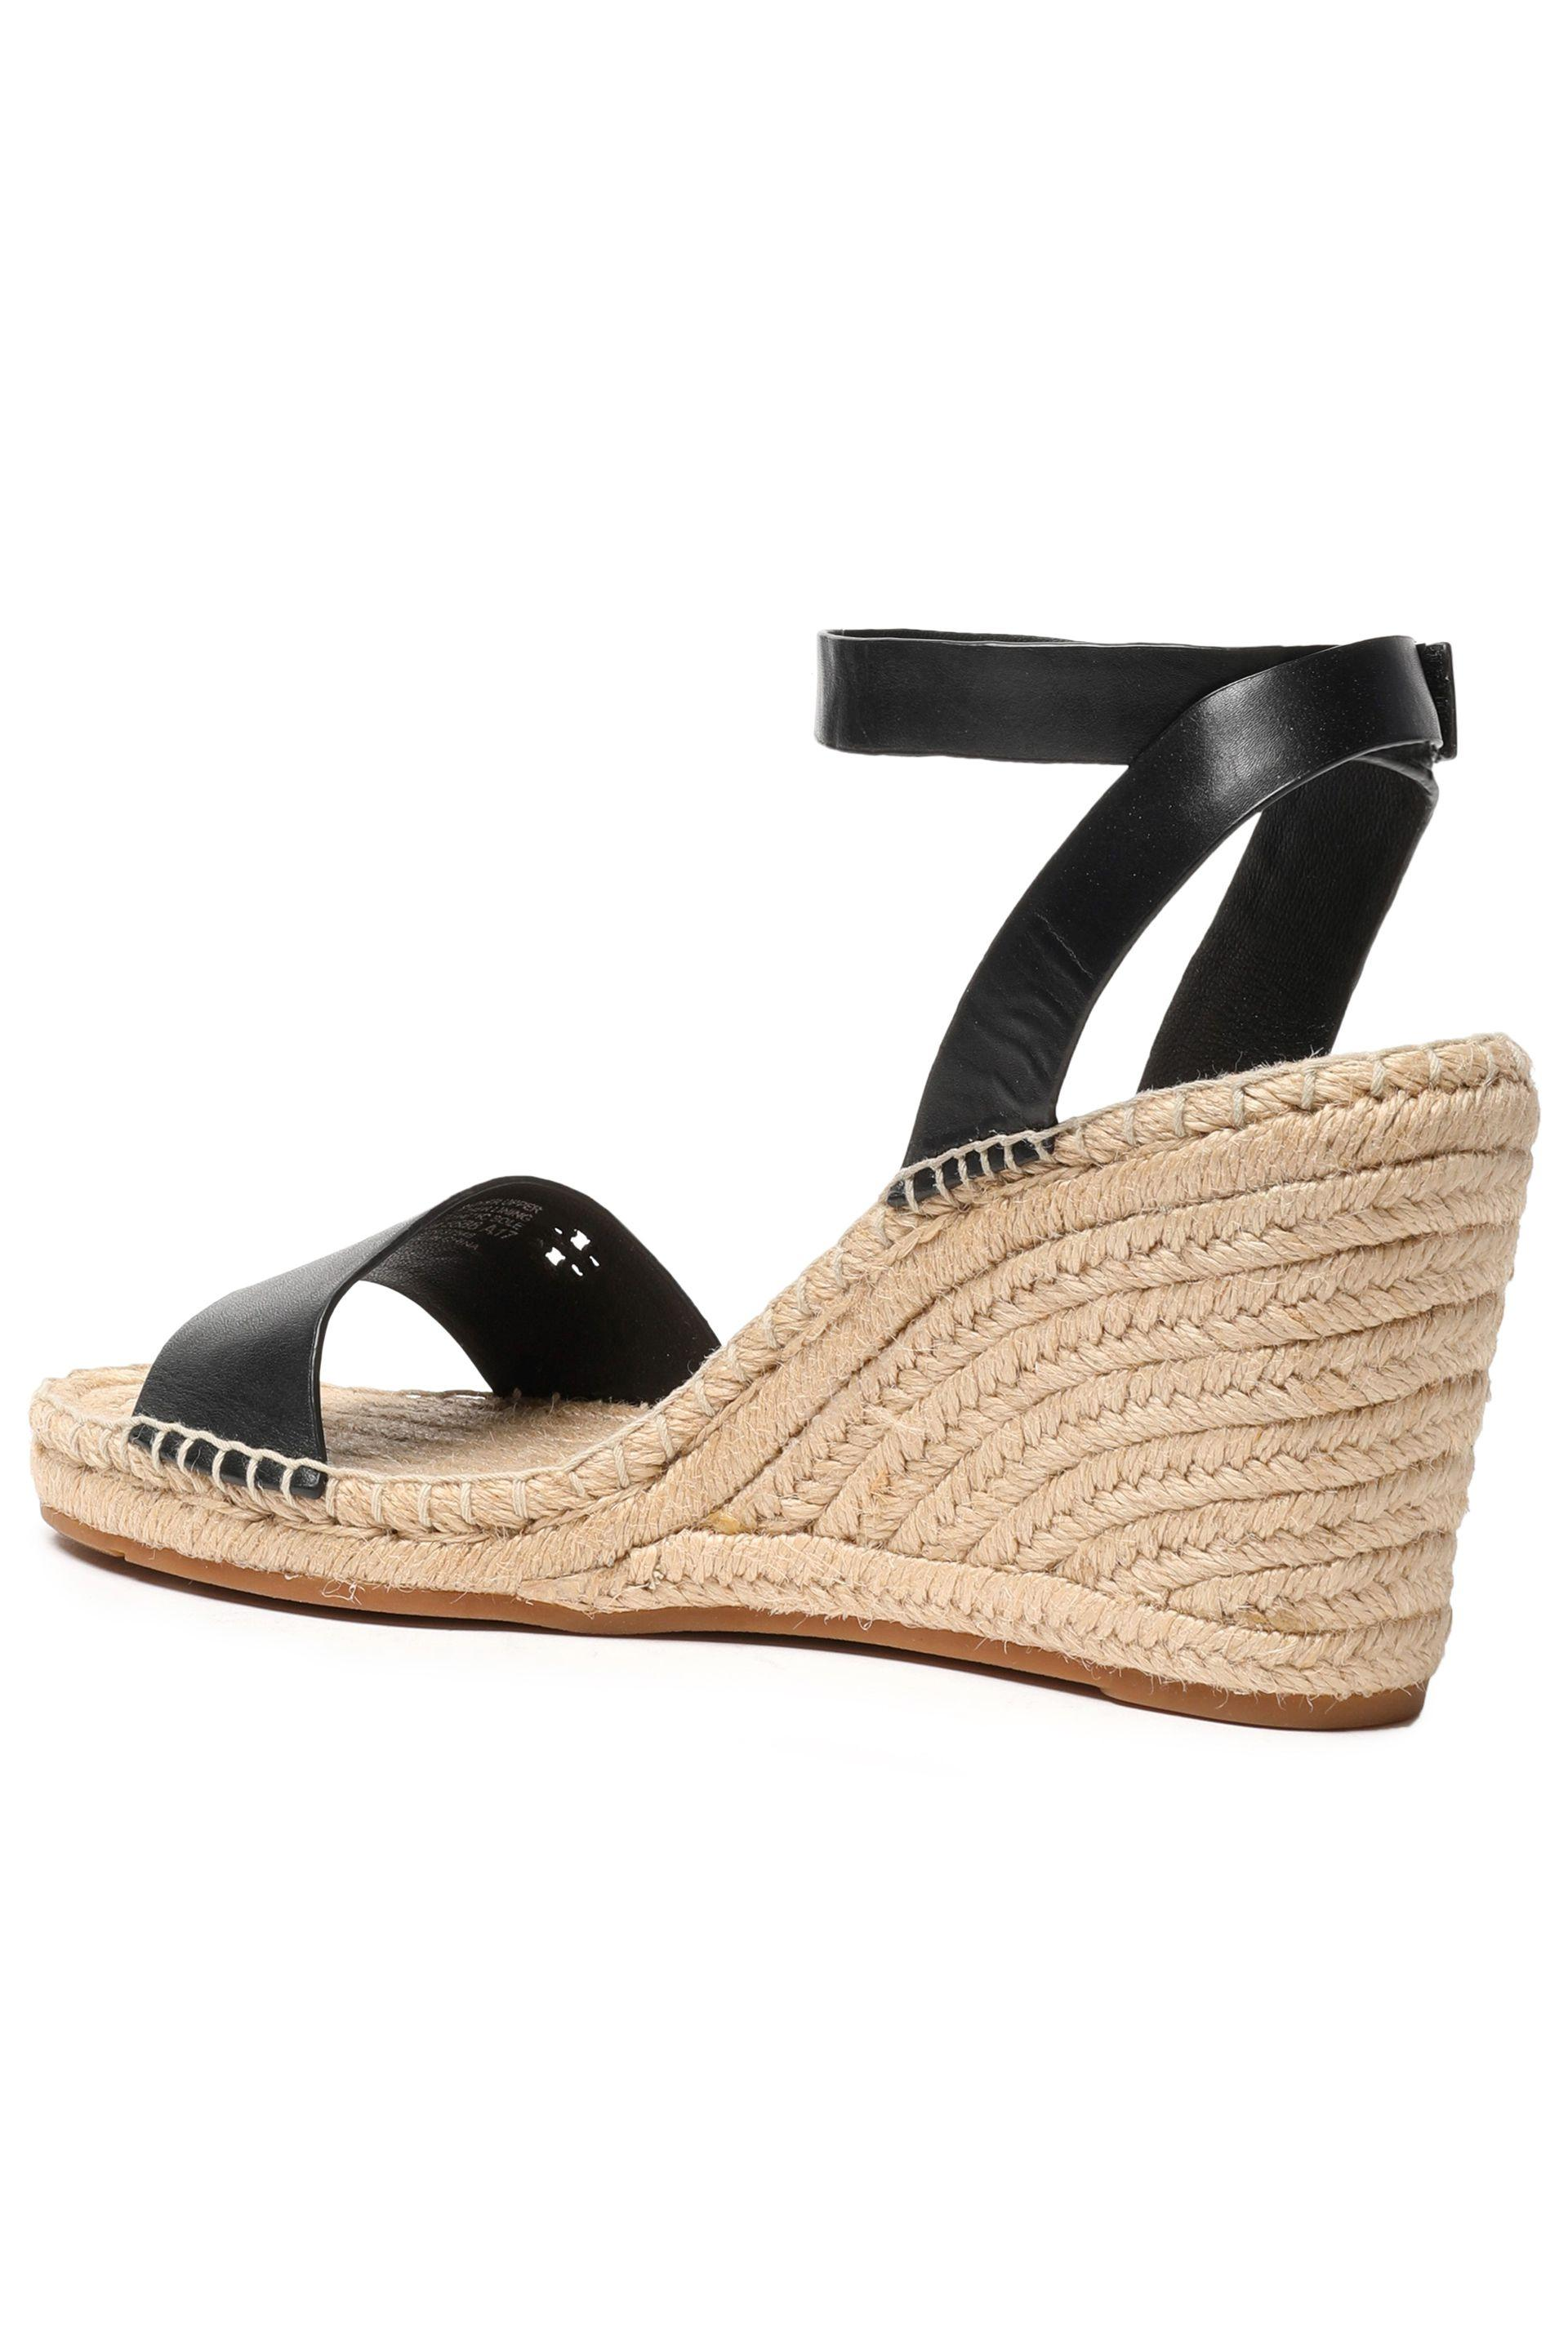 9630f129151 Tory Burch Woman Leather Espadrille Wedge Sandals Black in Black - Lyst